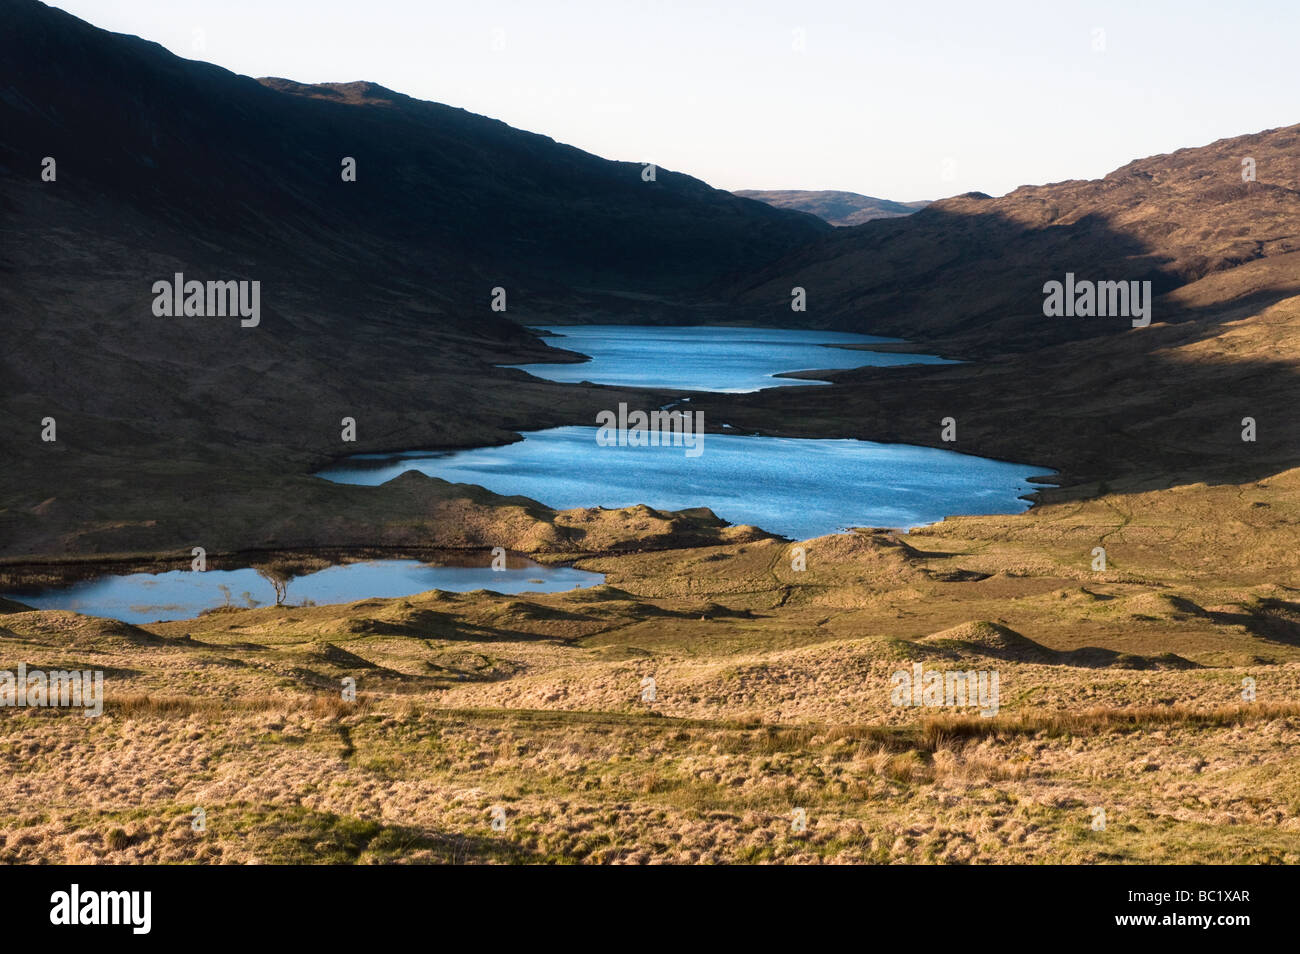 a study of contrasting light and shade using the spectacle lochs isle of mull scotland - Stock Image